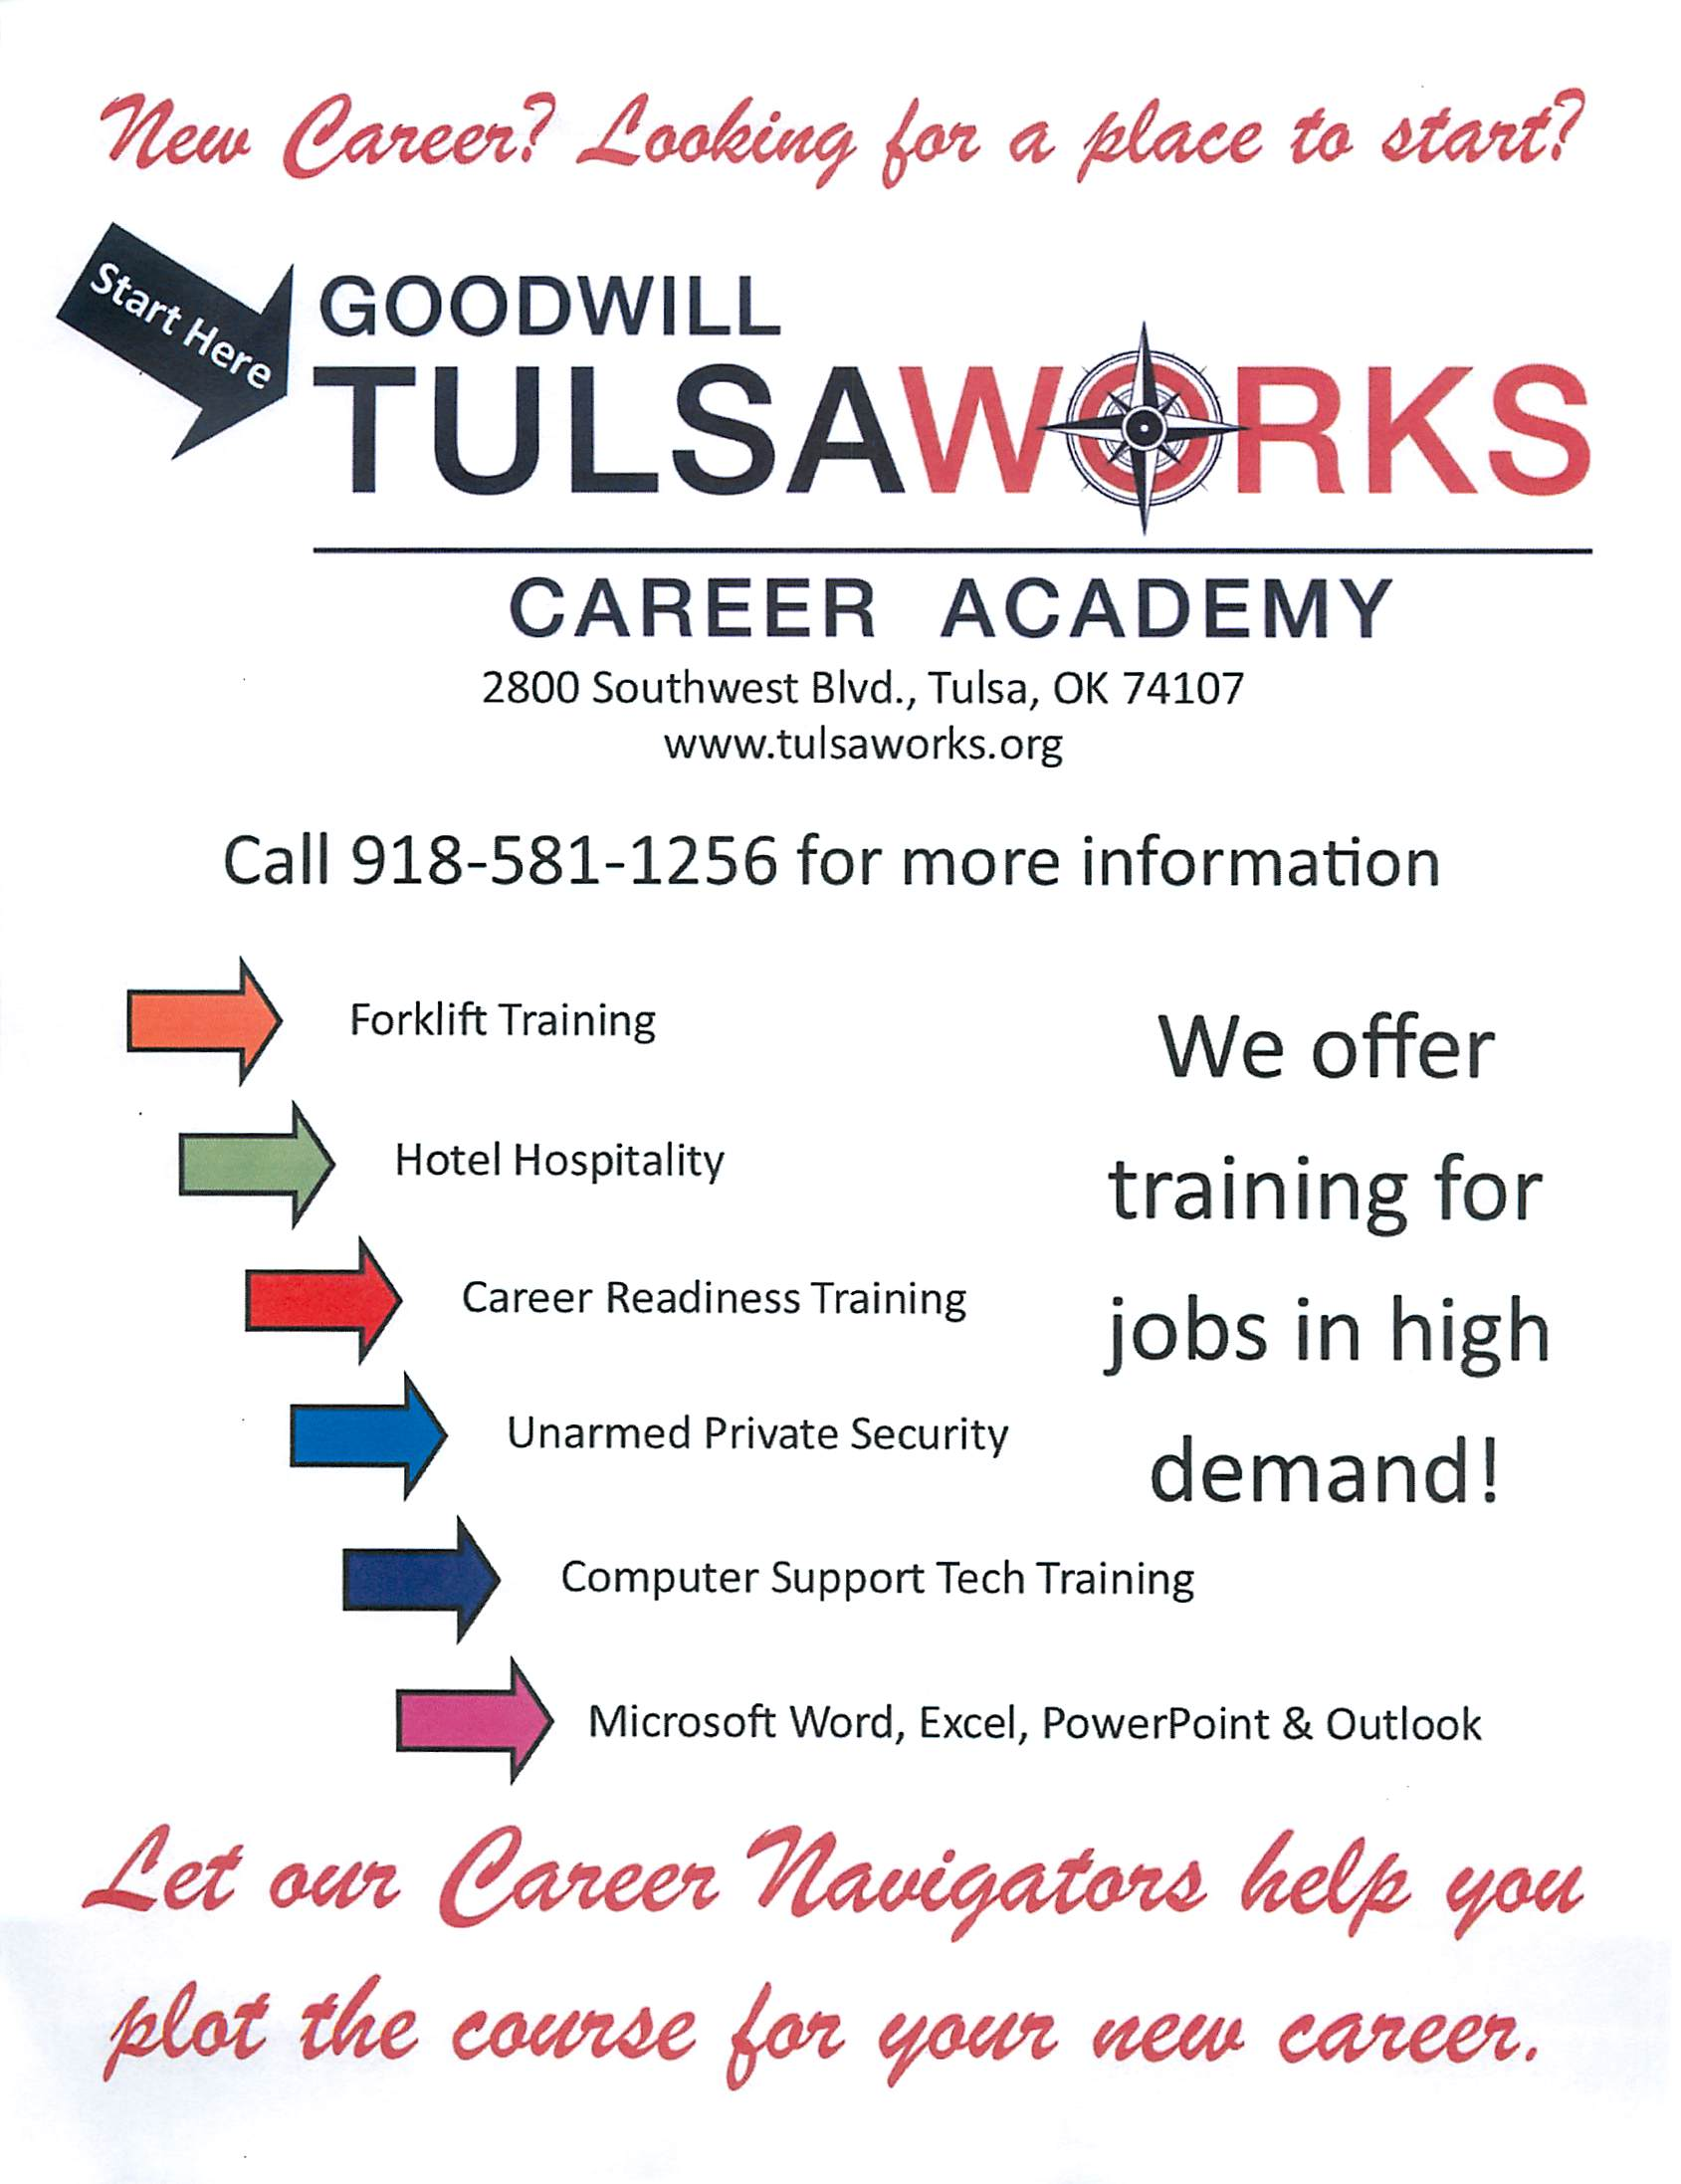 Goodwill Tulsaworks Career Academy Orientation 111 News You Can